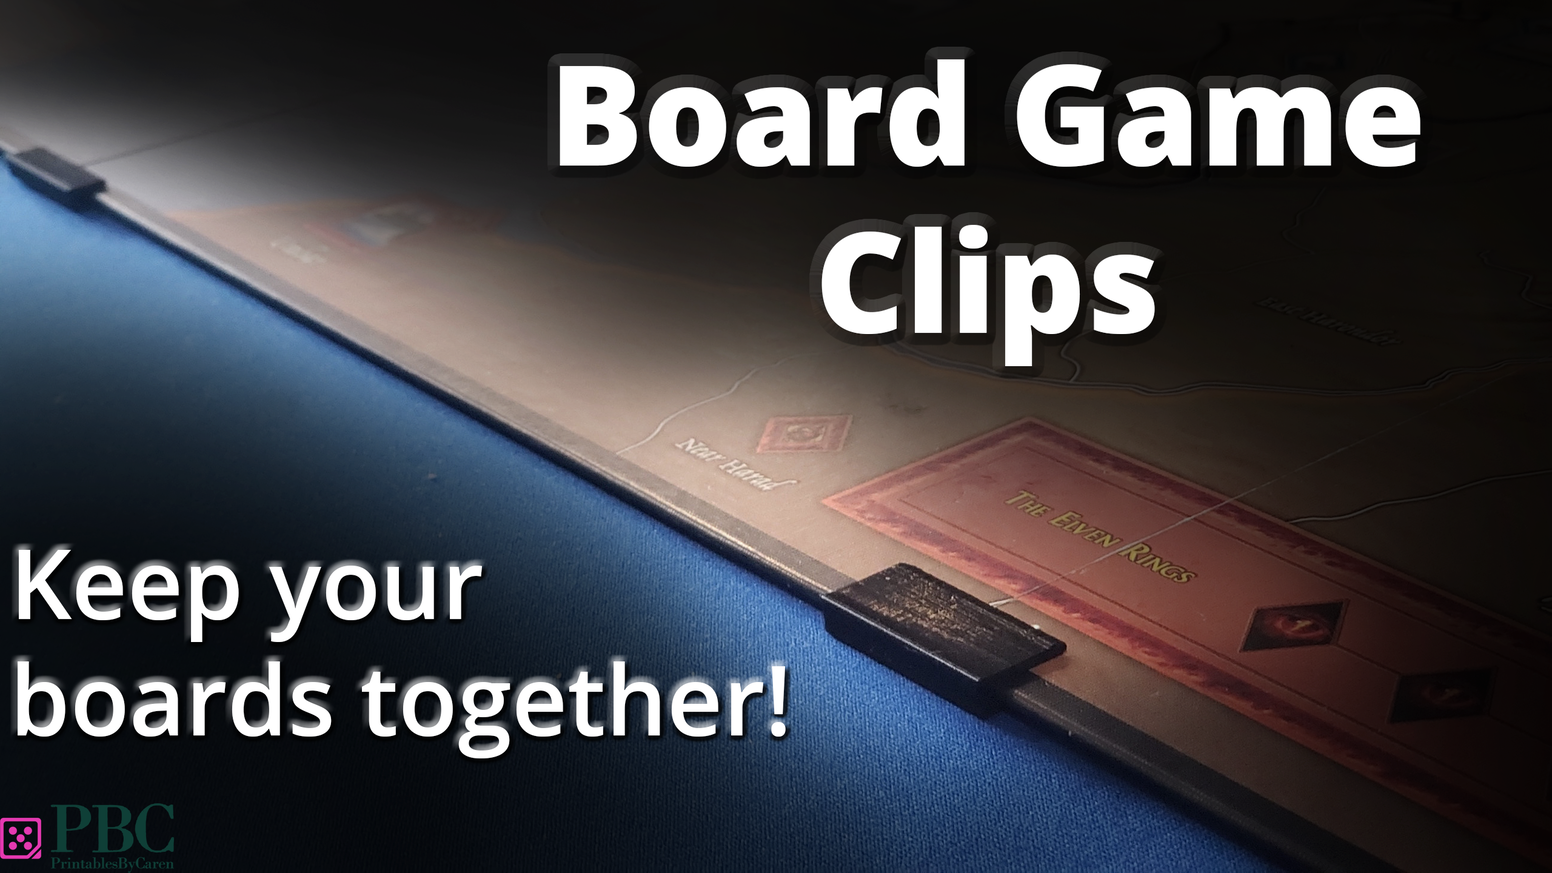 Clips that help keep your board game boards together.  Great for multi-board games and boards that don't like to stay put! Available at printablesbycaren.com and etsy.com/shop/PrintablesByCaren